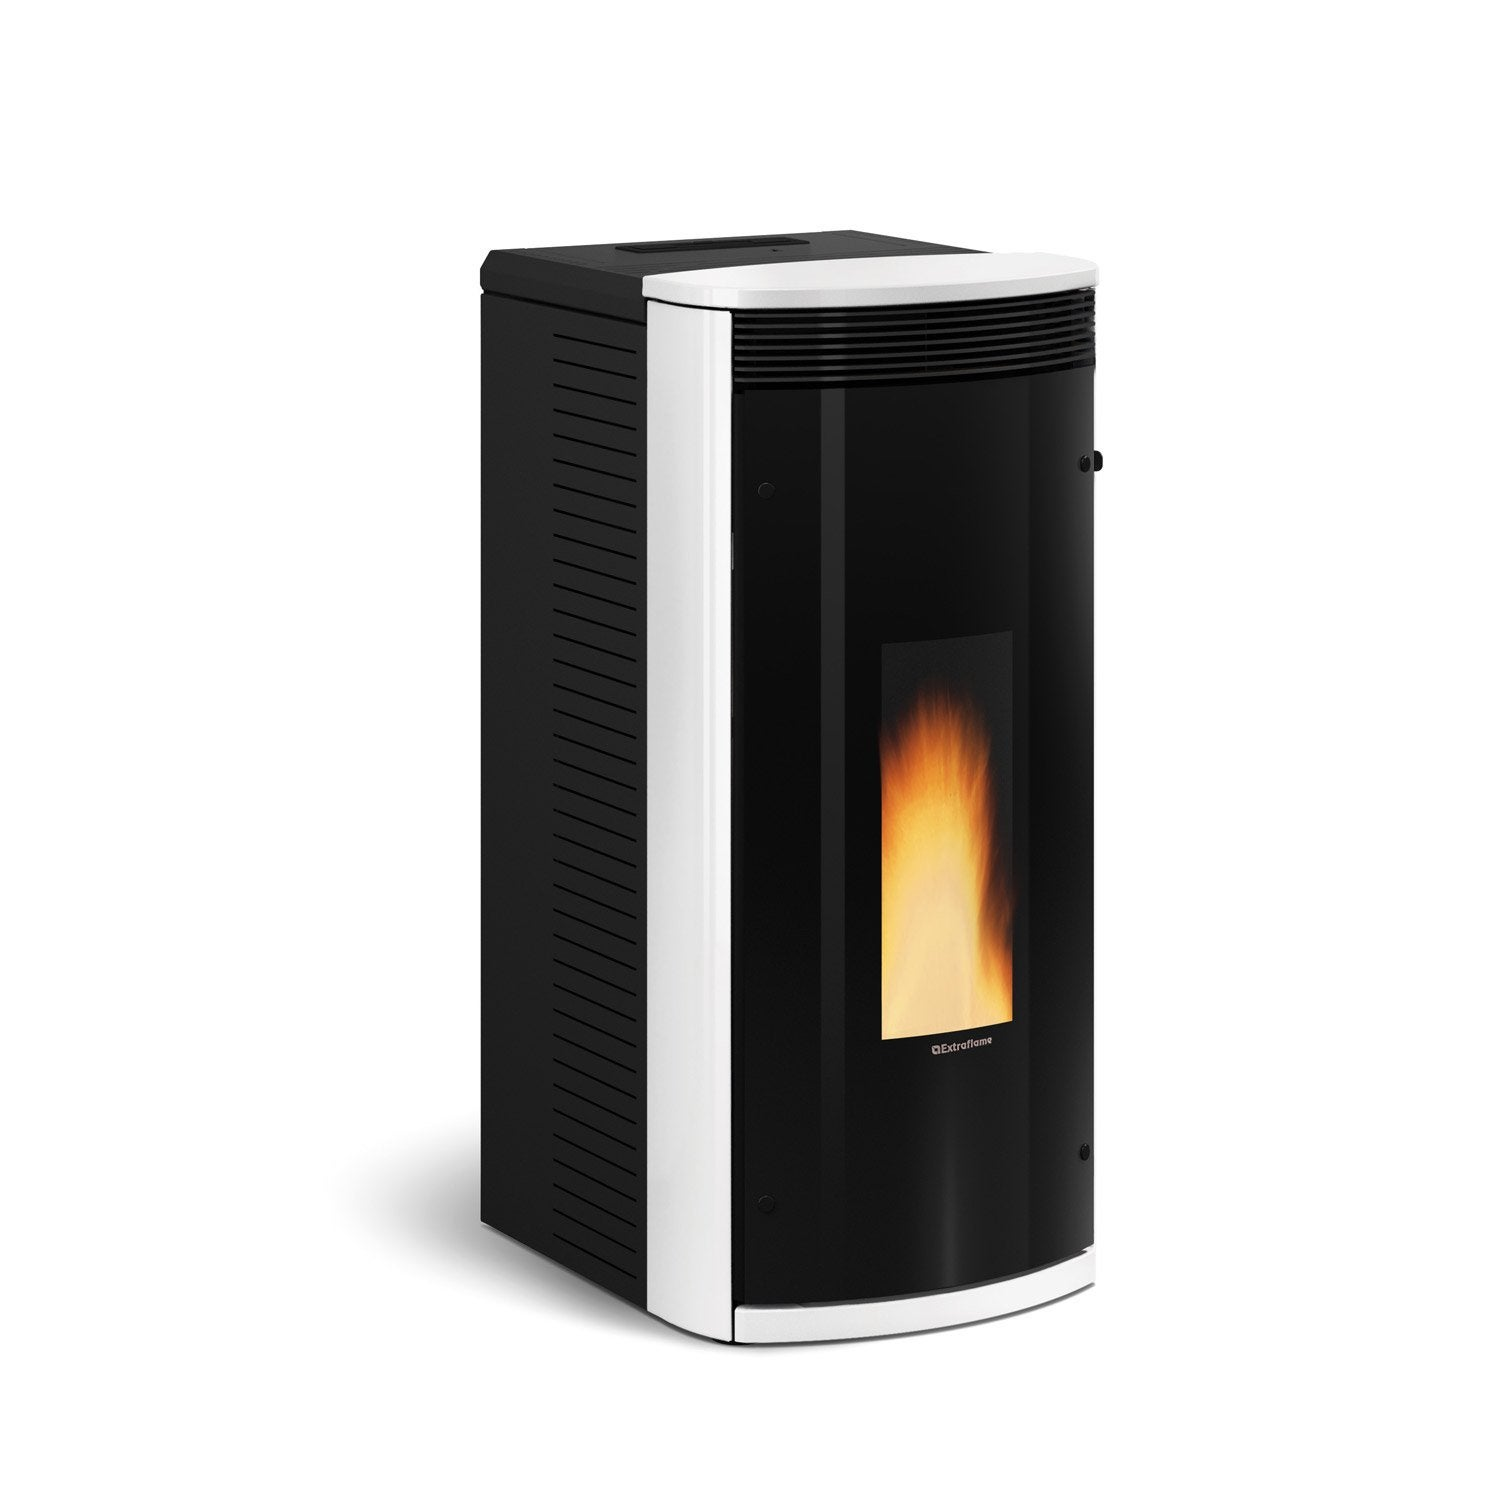 po le granul s extraflame sibilla plus blanc 8 2 kw. Black Bedroom Furniture Sets. Home Design Ideas